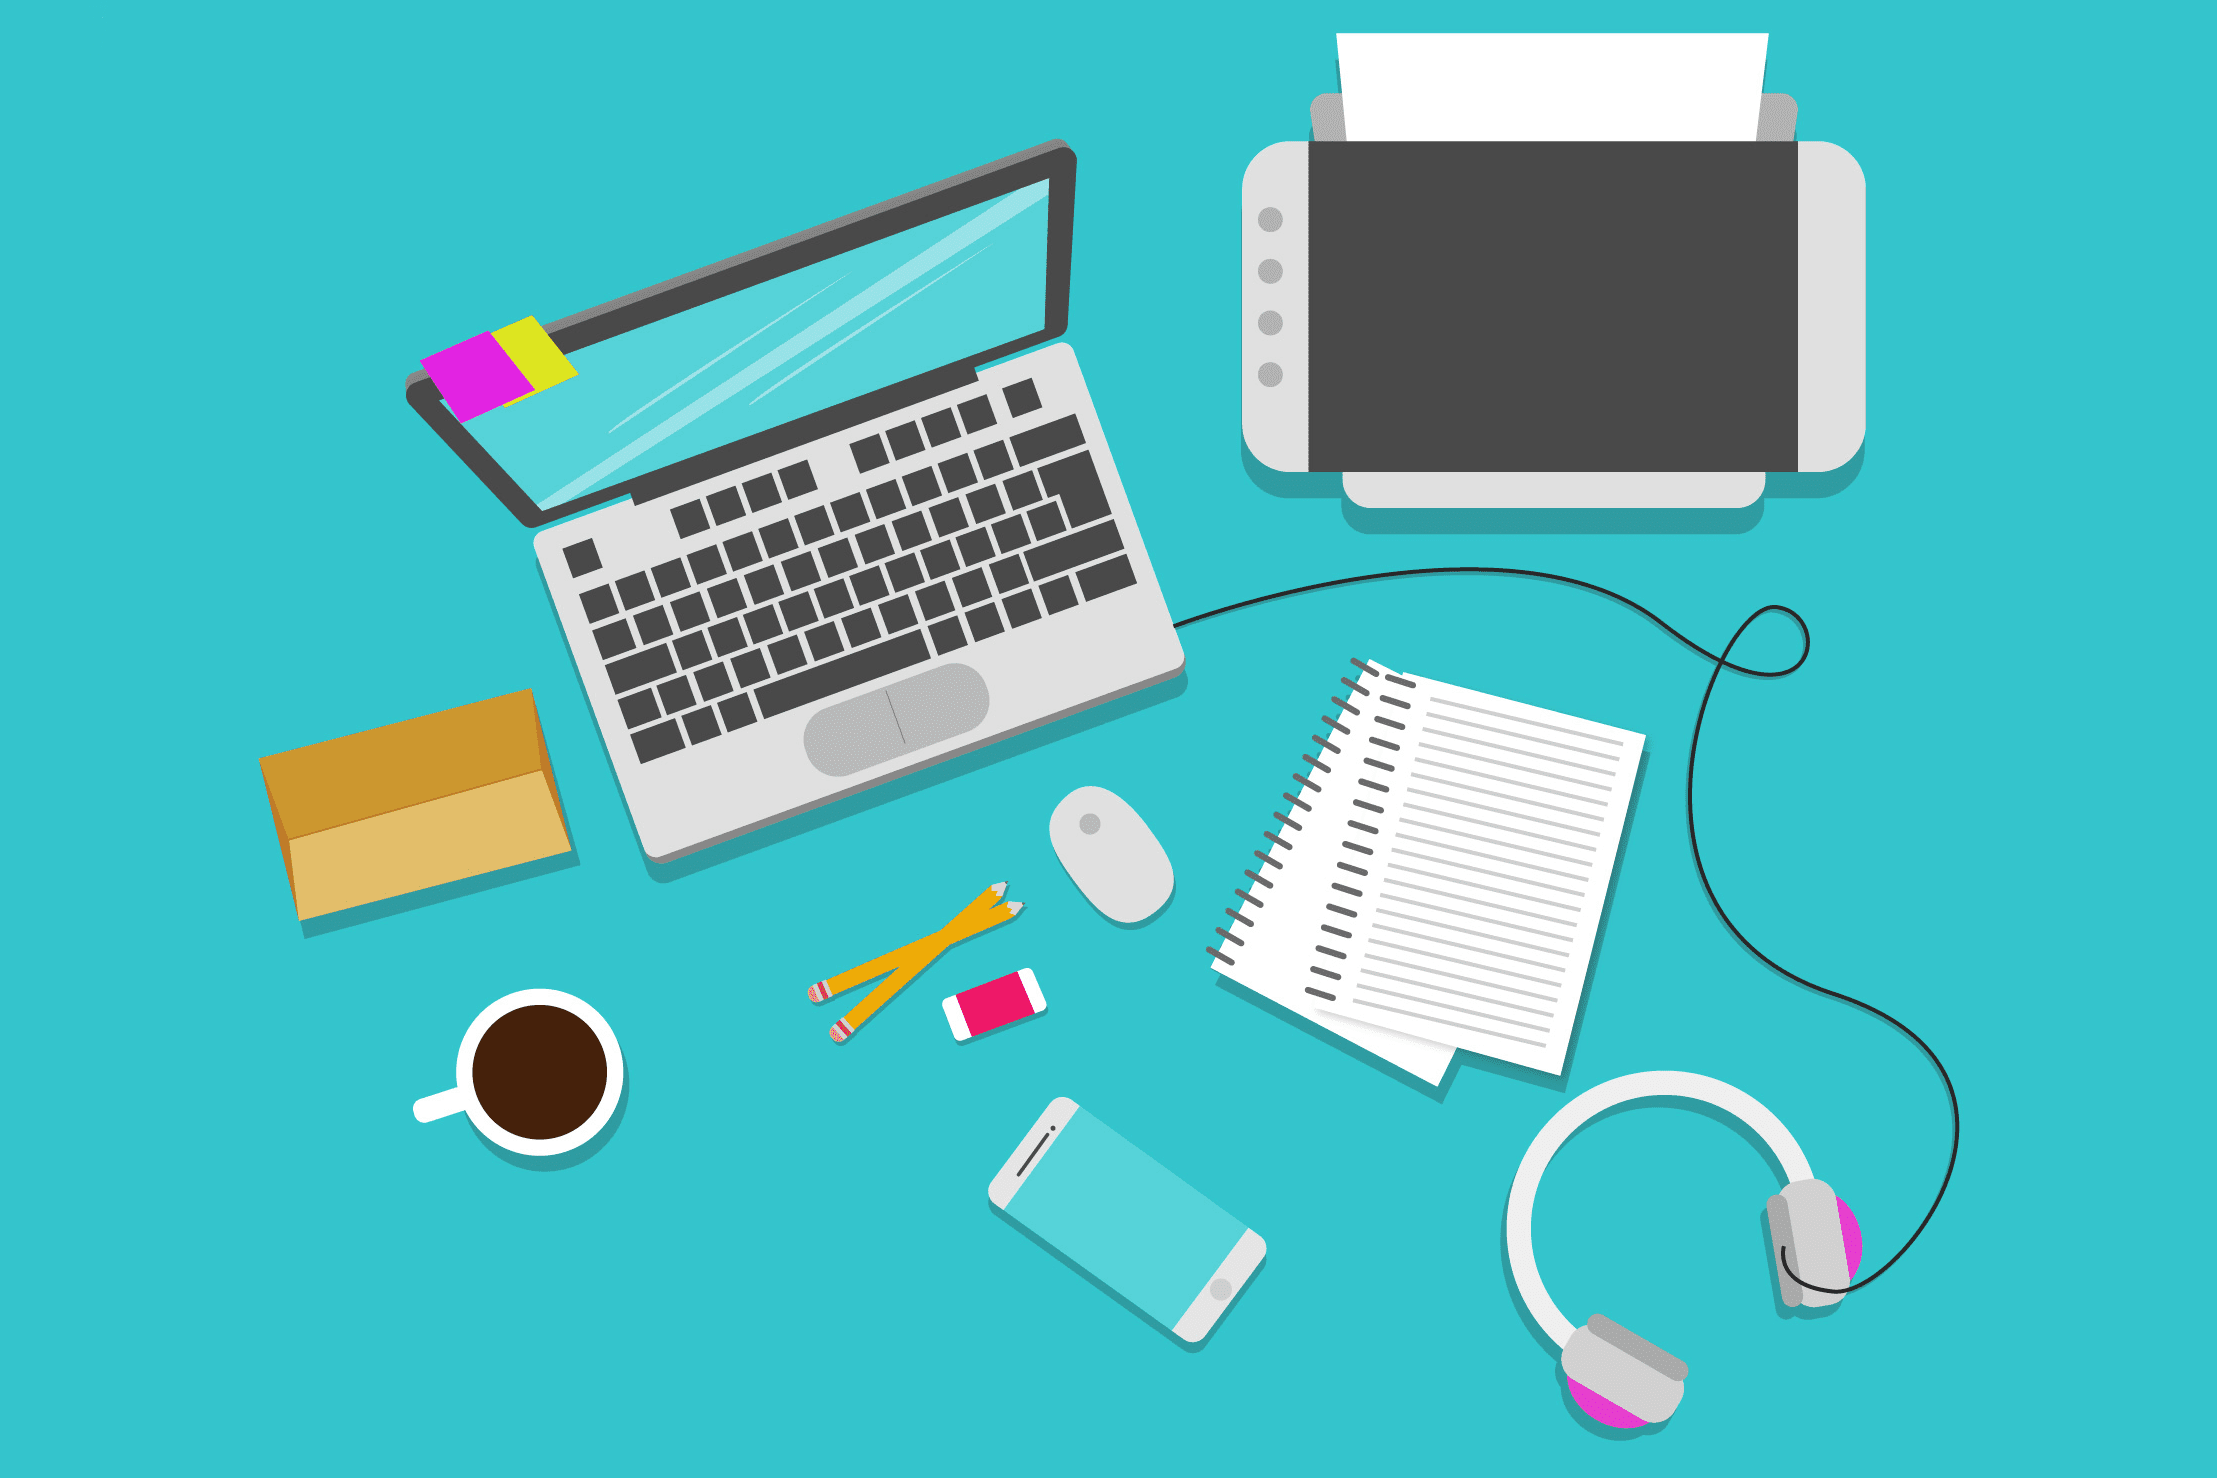 Illustration of a desktop with a printer, laptop, papers, headphones, phone, drink, and more